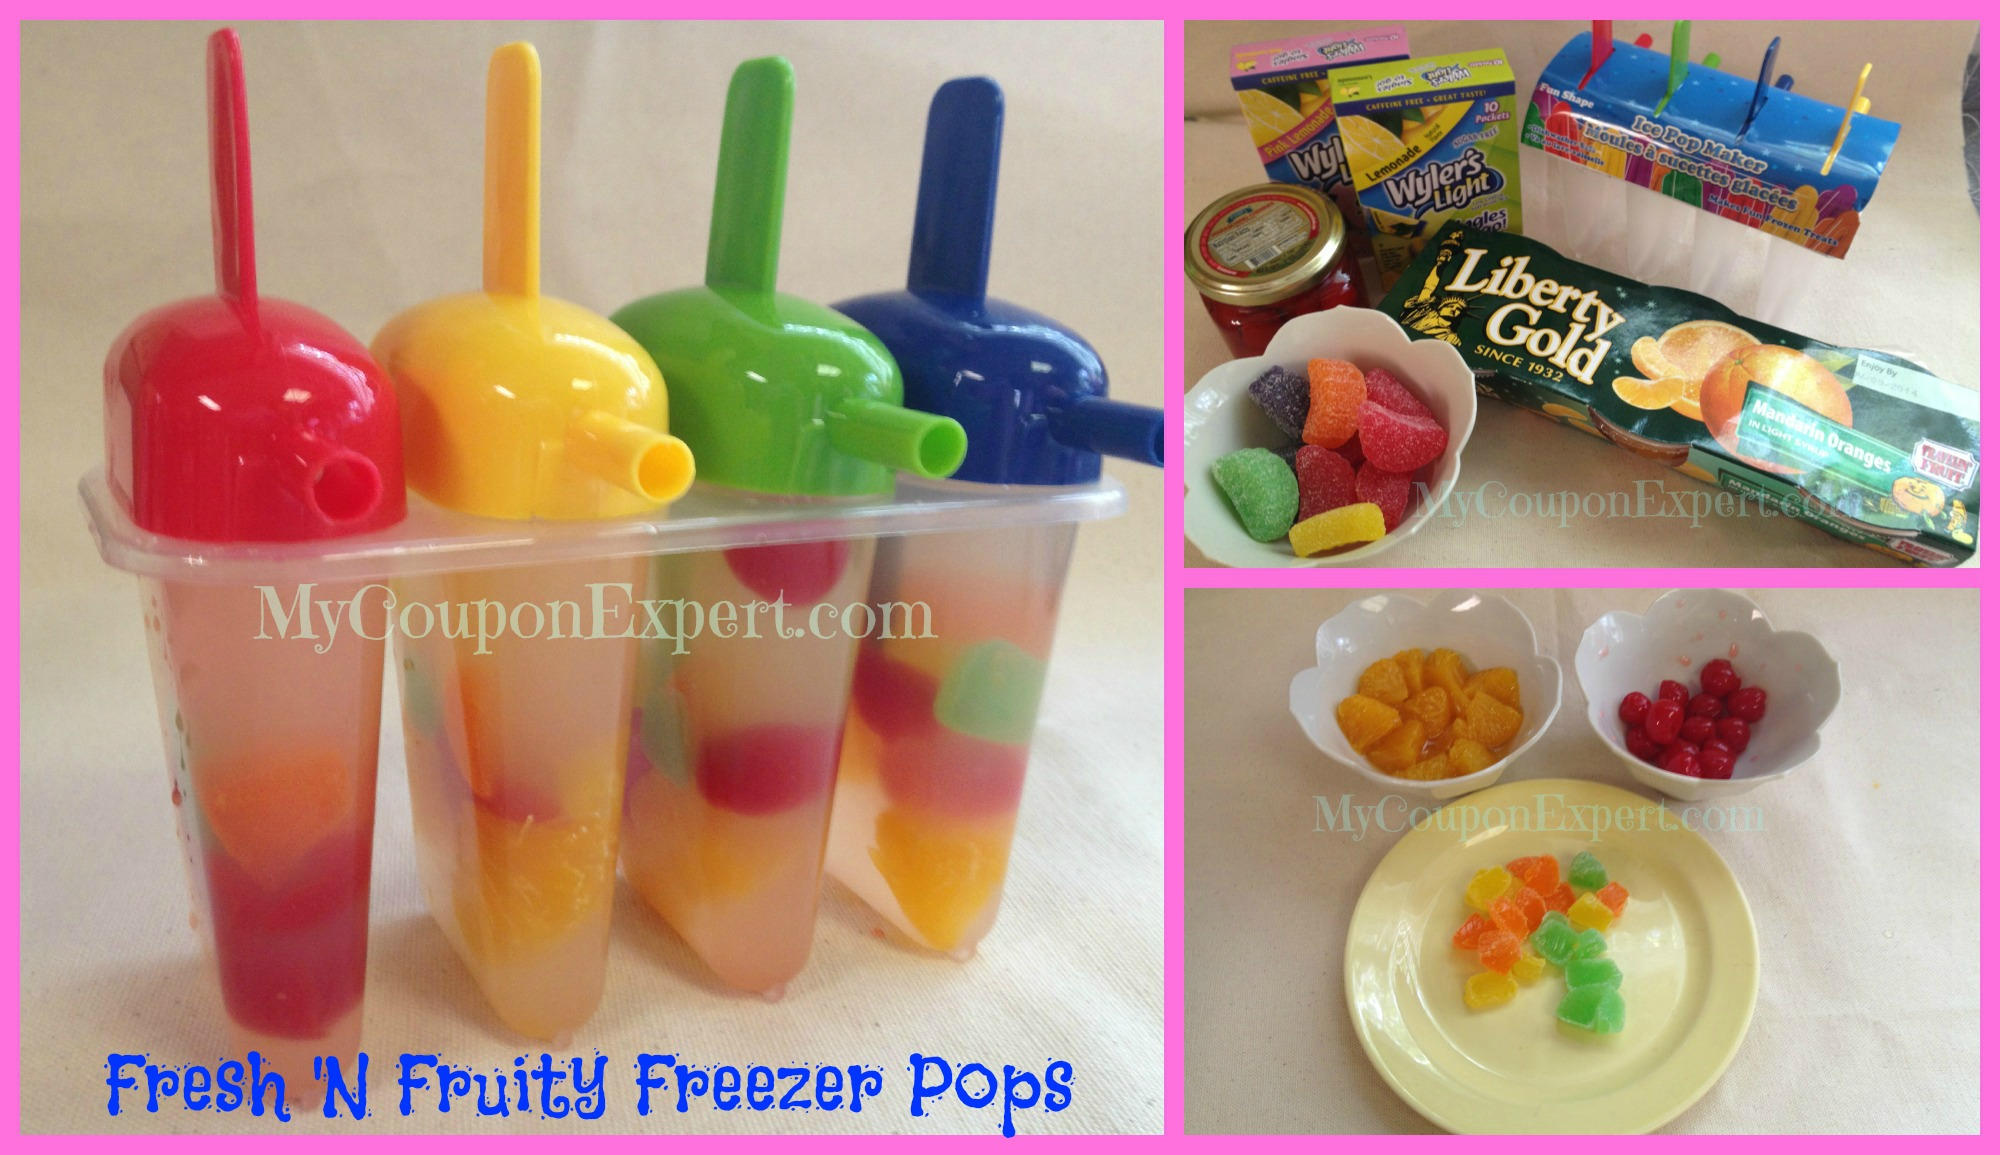 Fresh 'N Fruity Freezer Pops!  You are going to LOVE this!